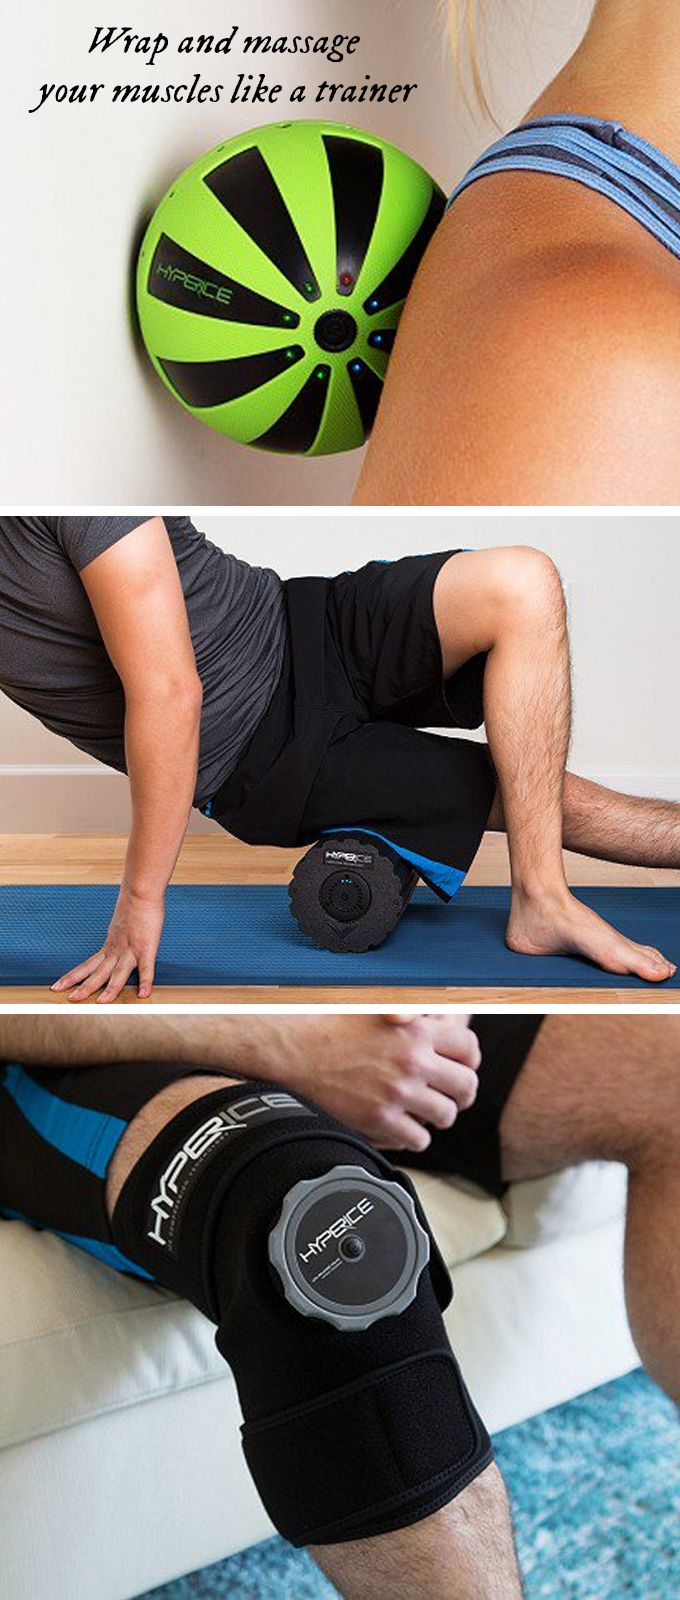 Wrap and massage your muscles like a trainer—all by yourself. These recovery tools help promote muscle recovery and better performance.